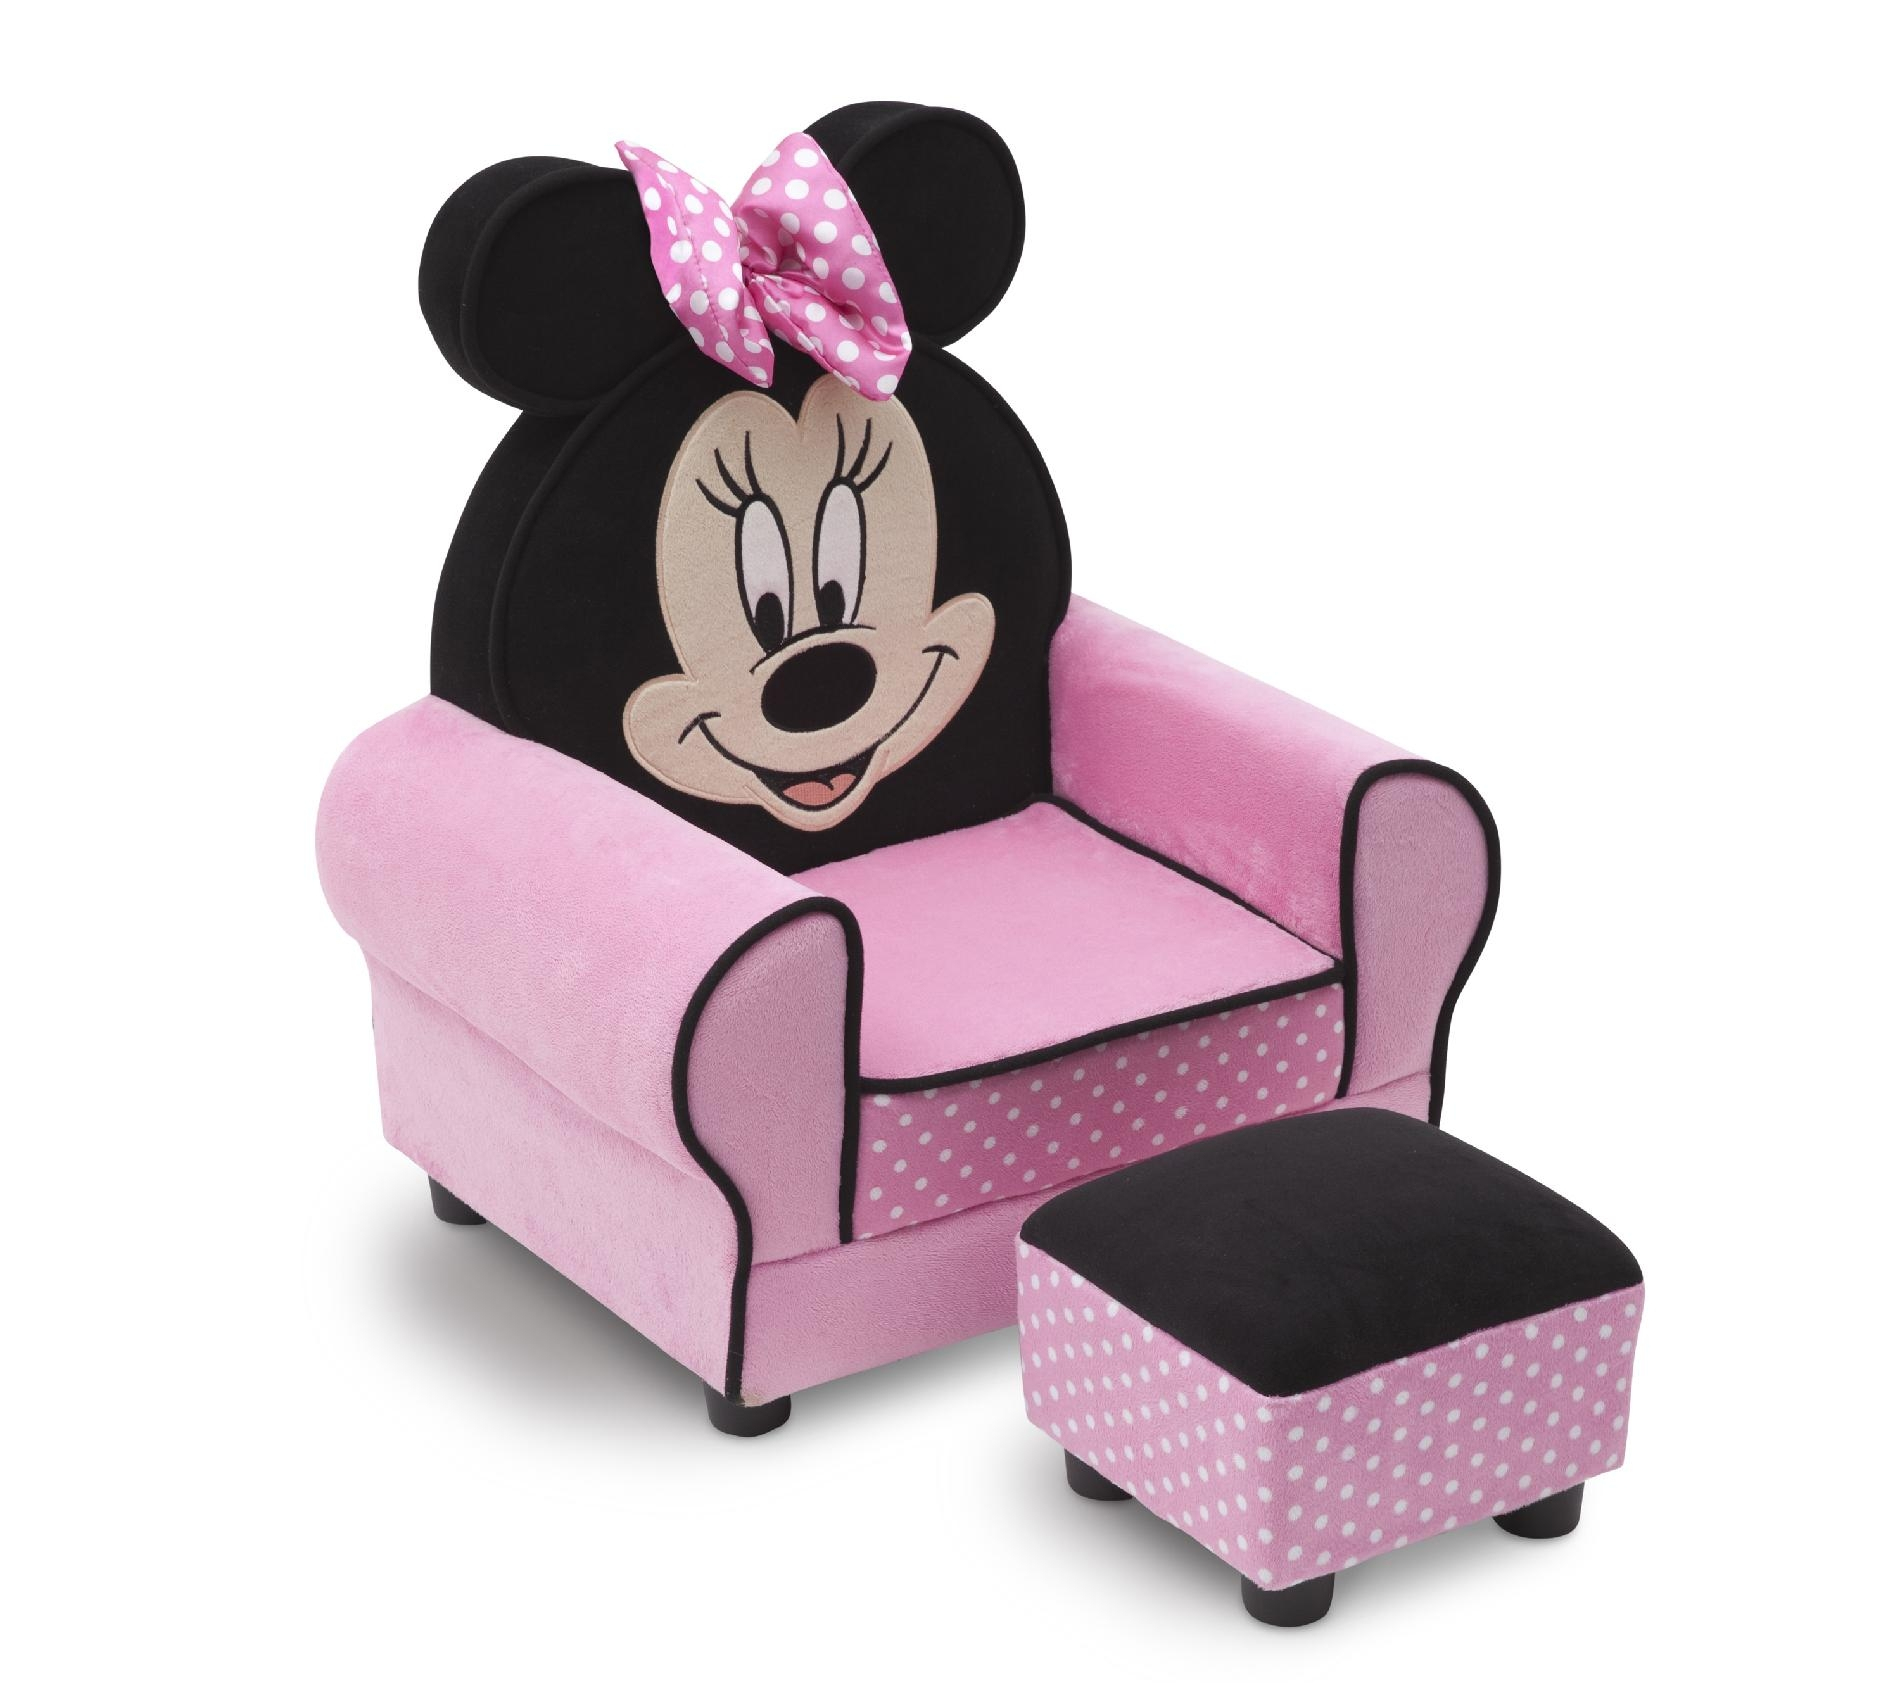 Disney Mickey Mouse Clubhouse Toddler Sofa Chair And Ottoman Throughout Disney Sofa Chairs (Image 4 of 15)